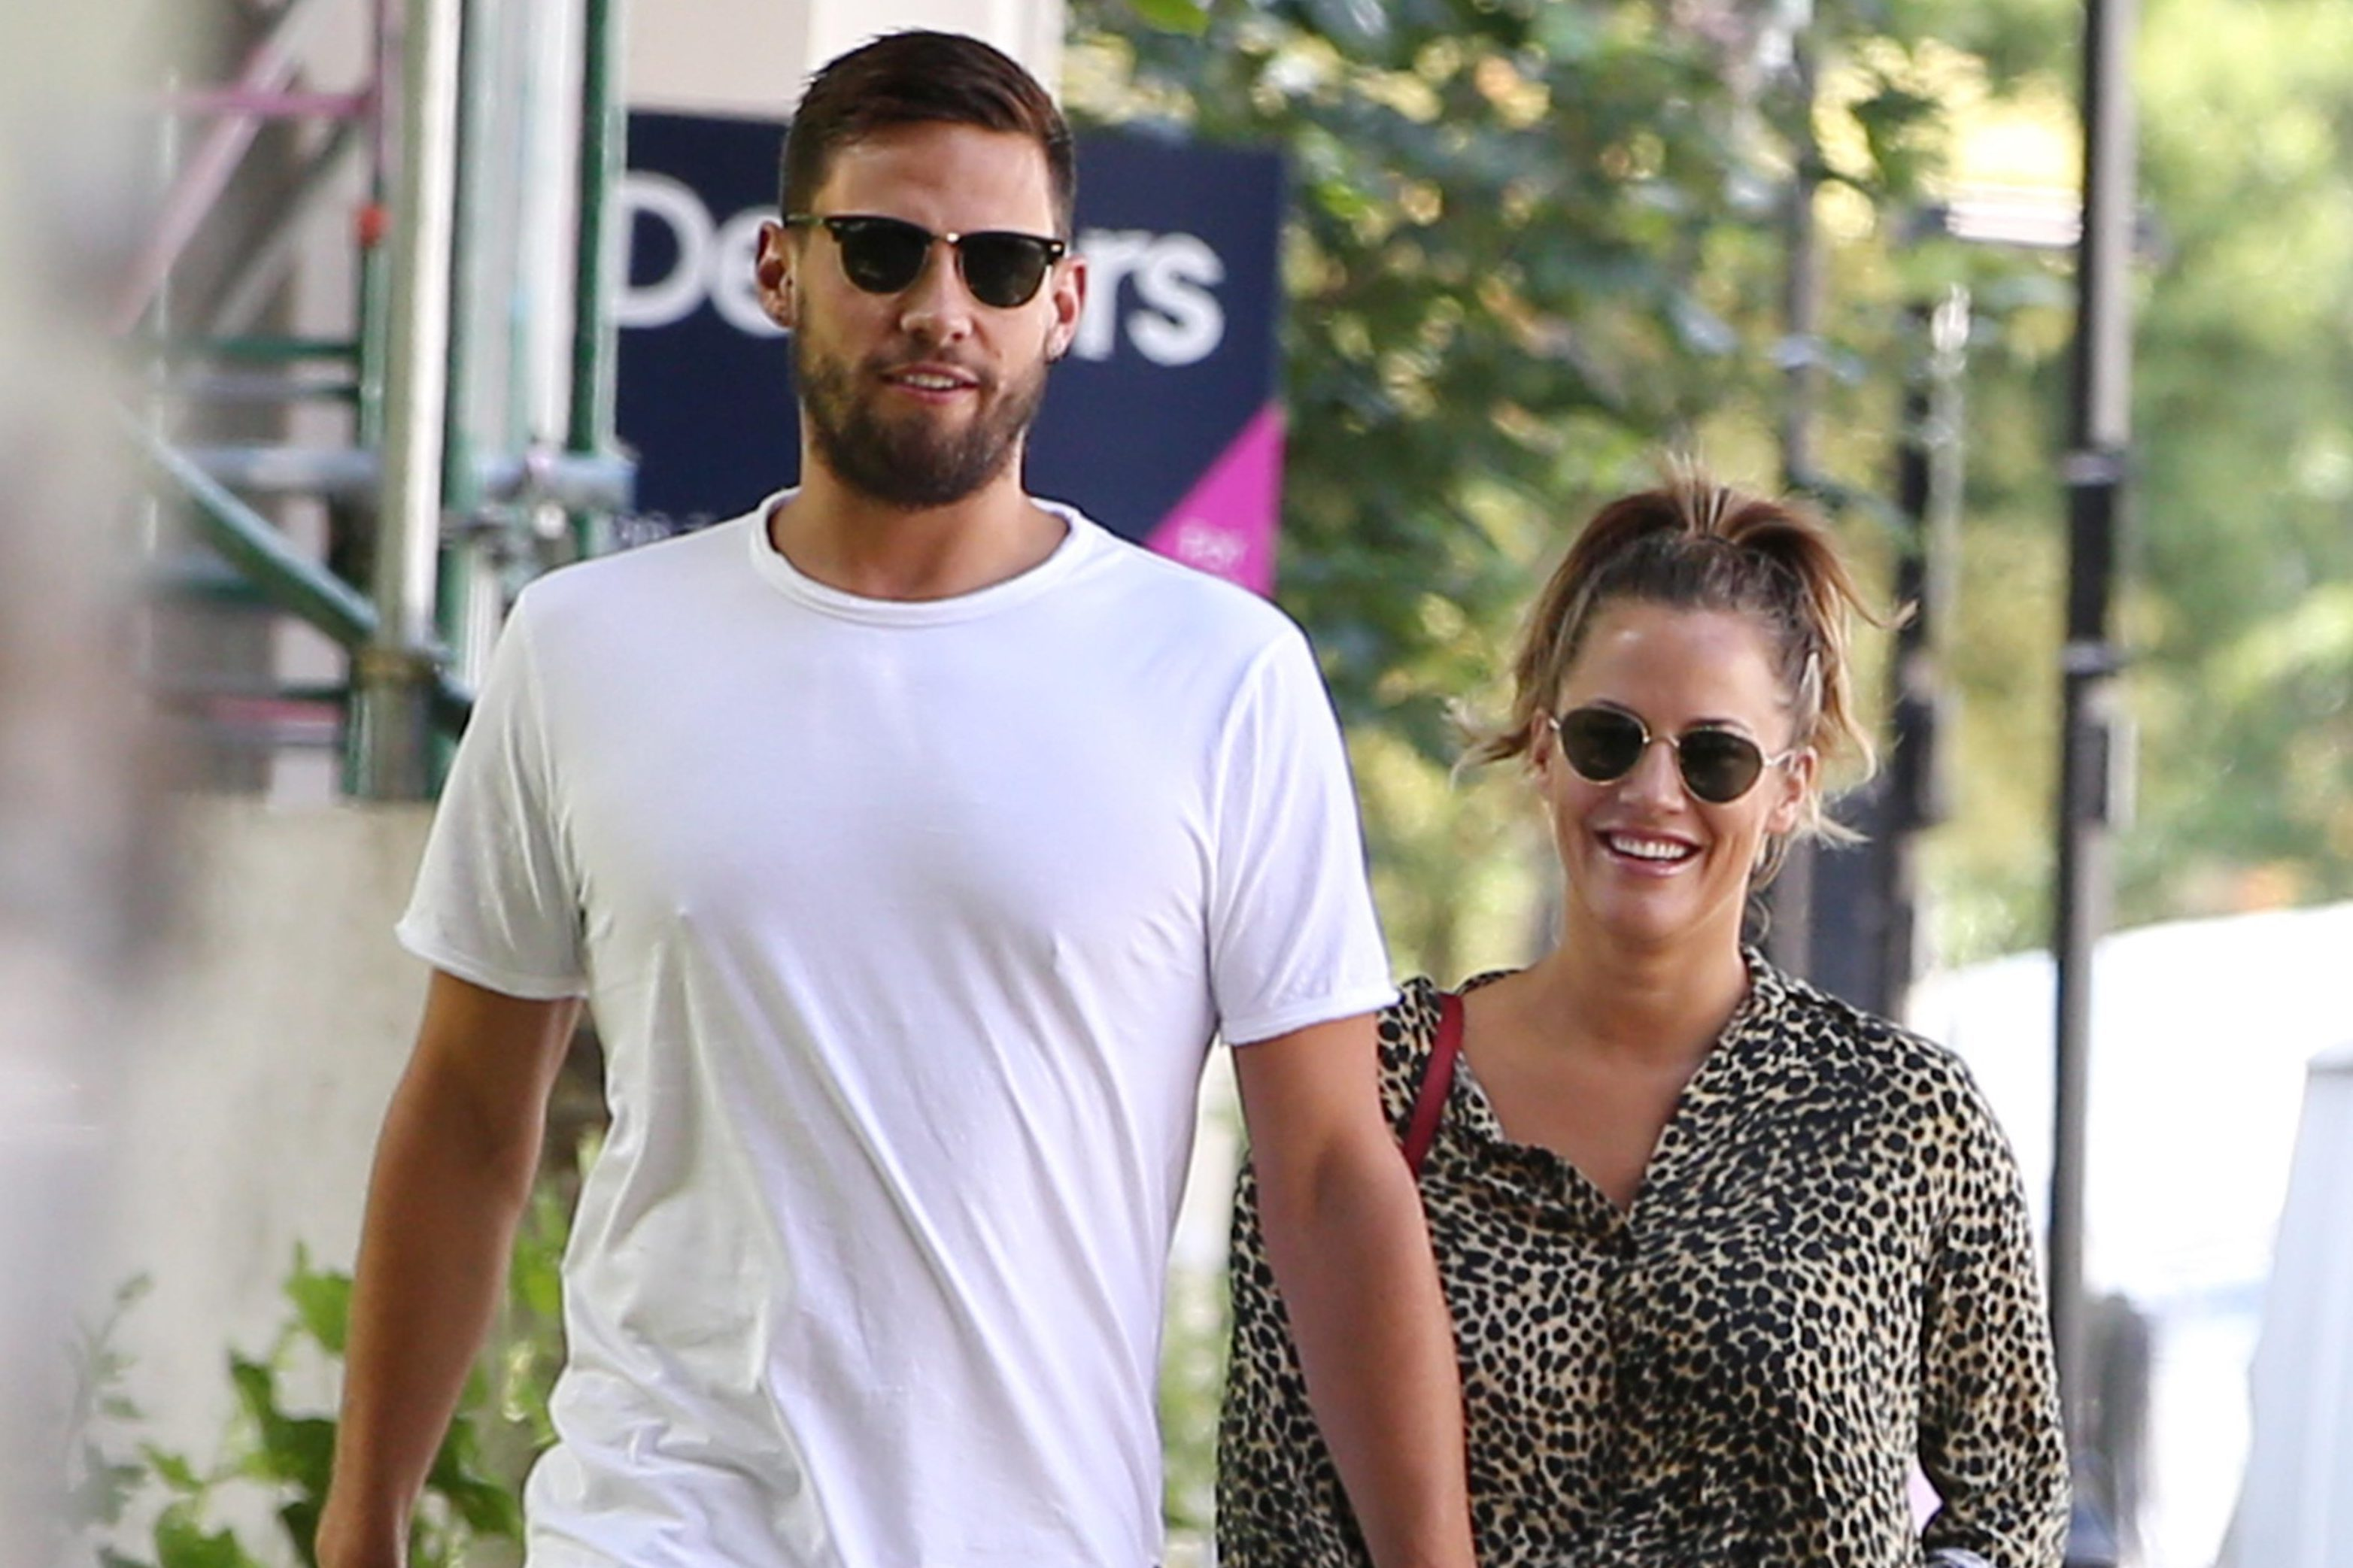 Caroline Flack 'puts Andrew Brady on her payroll as an advisor to save their relationship'